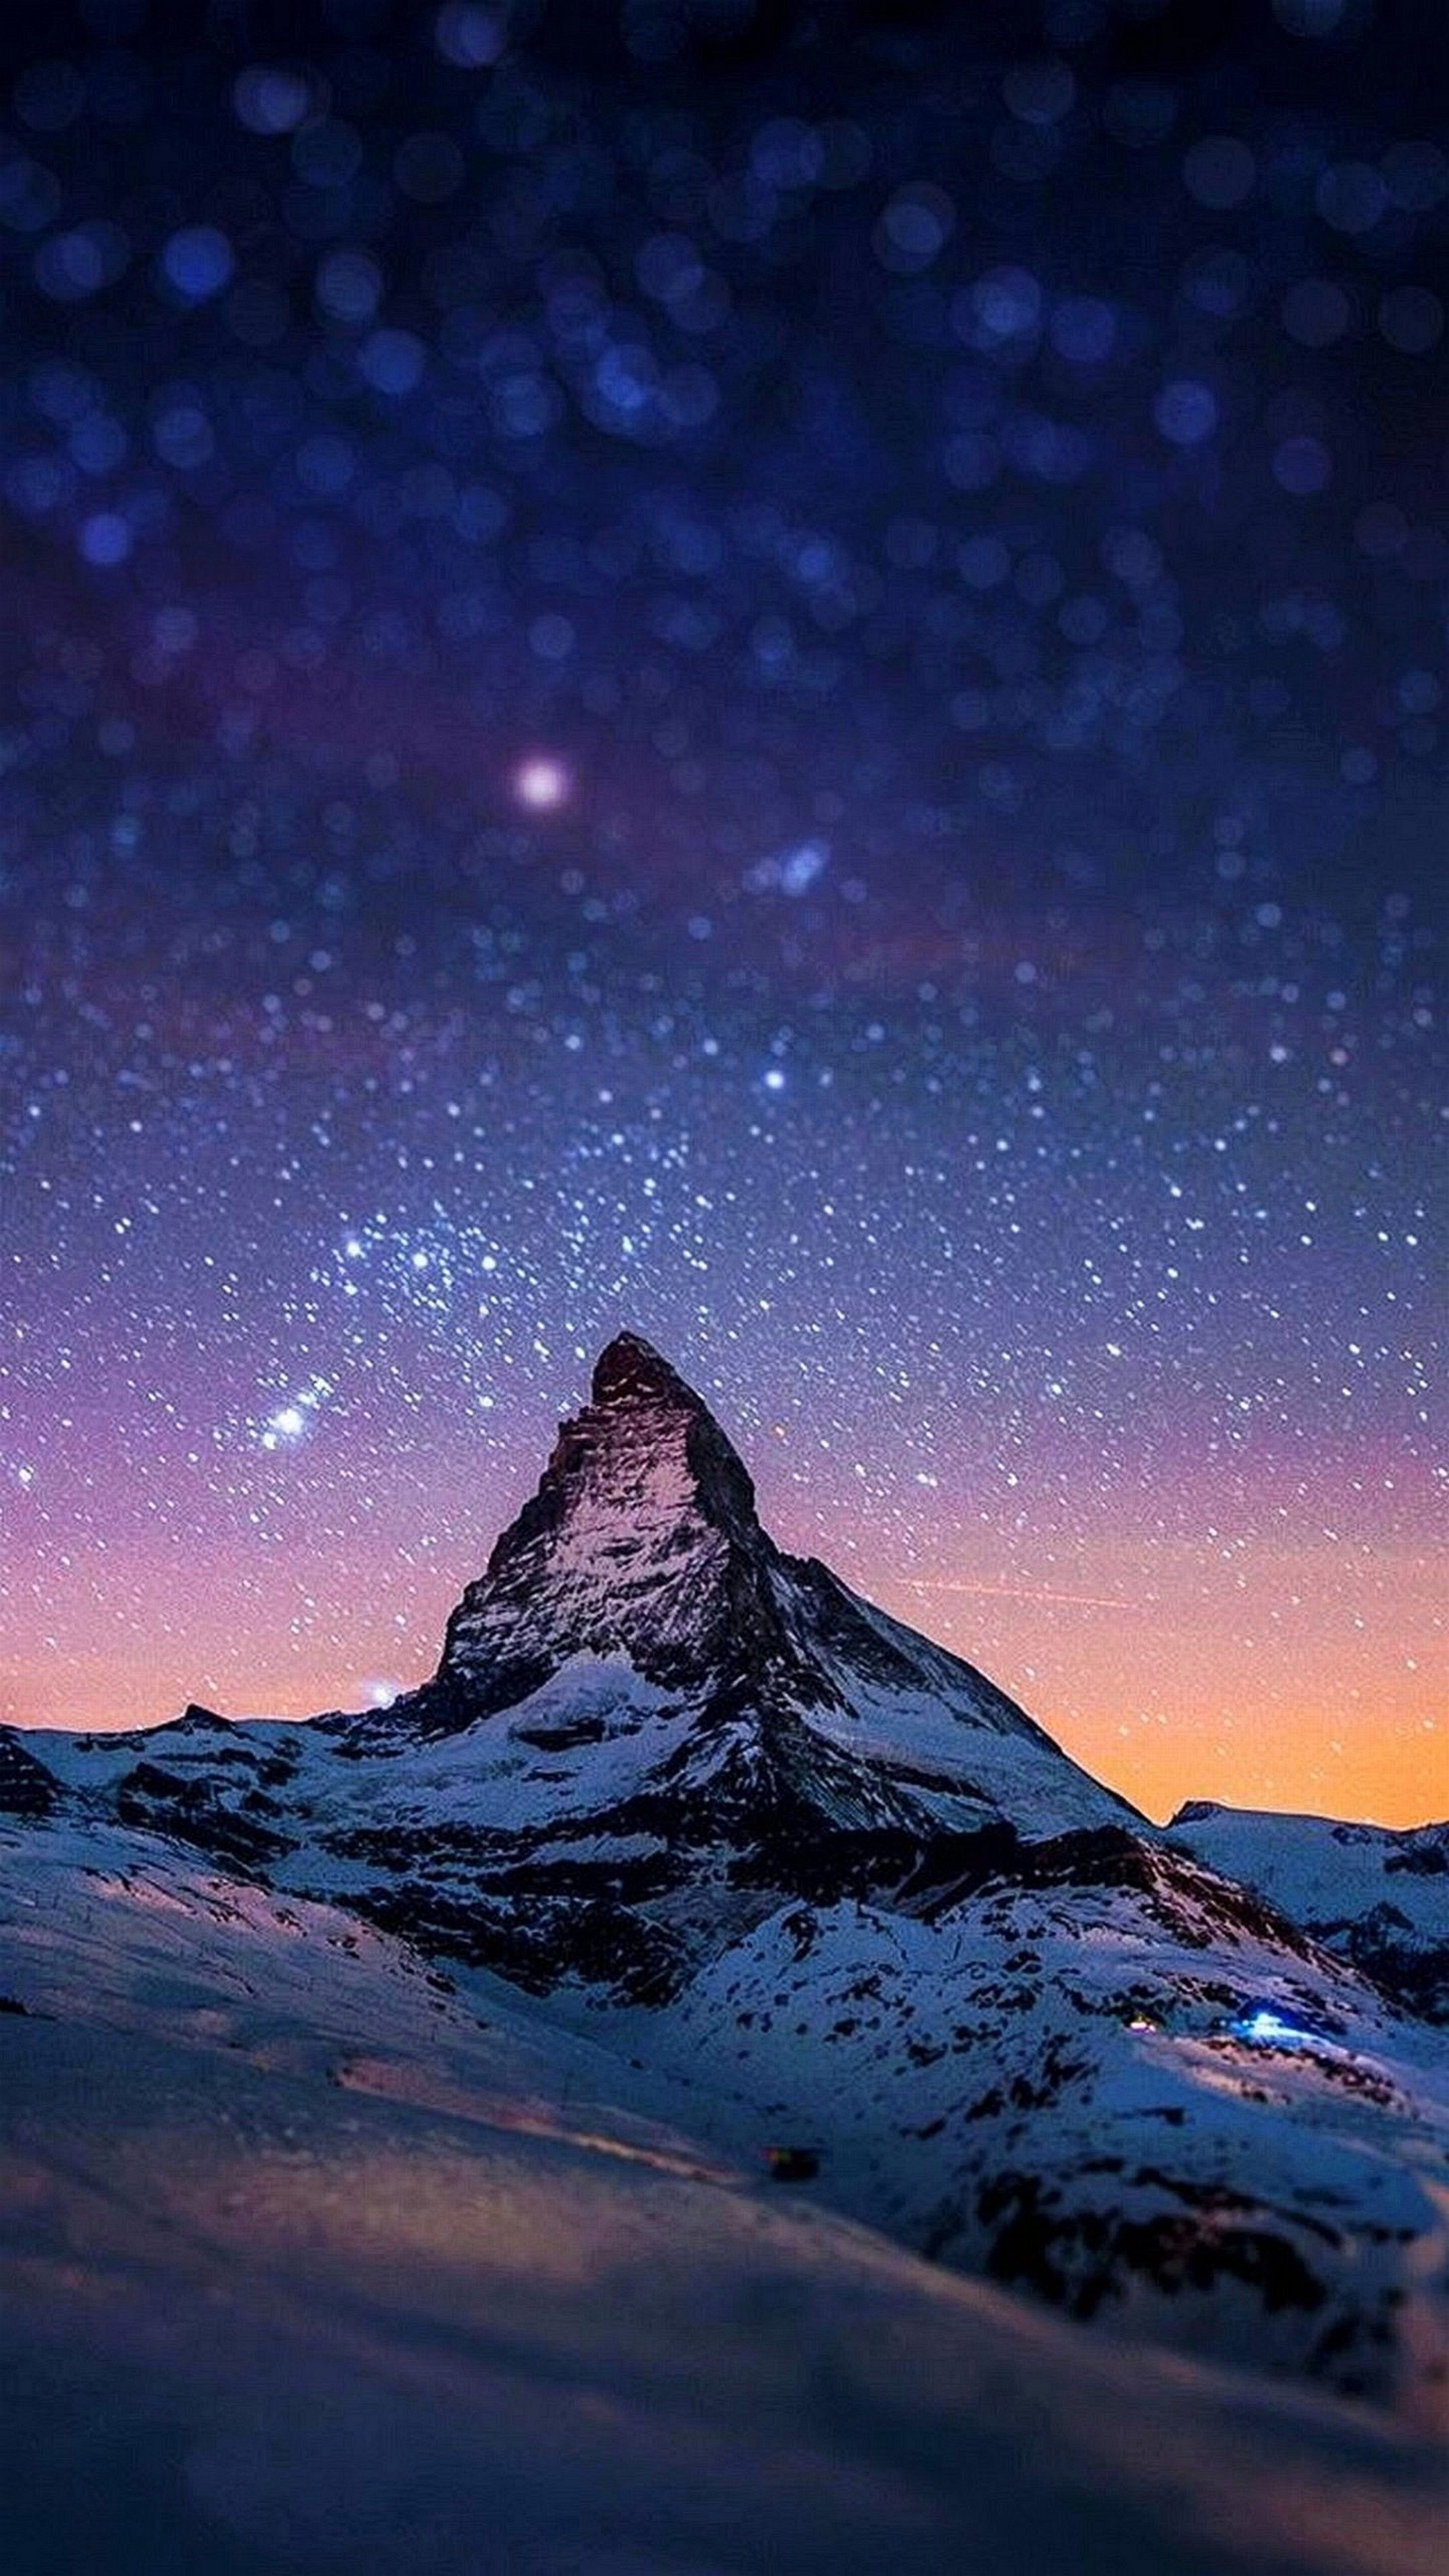 4k Phone Wallpapers Top Free 4k Phone Backgrounds Wallpaperaccess Landscape Wallpaper Beautiful Night Sky Macbook Wallpaper